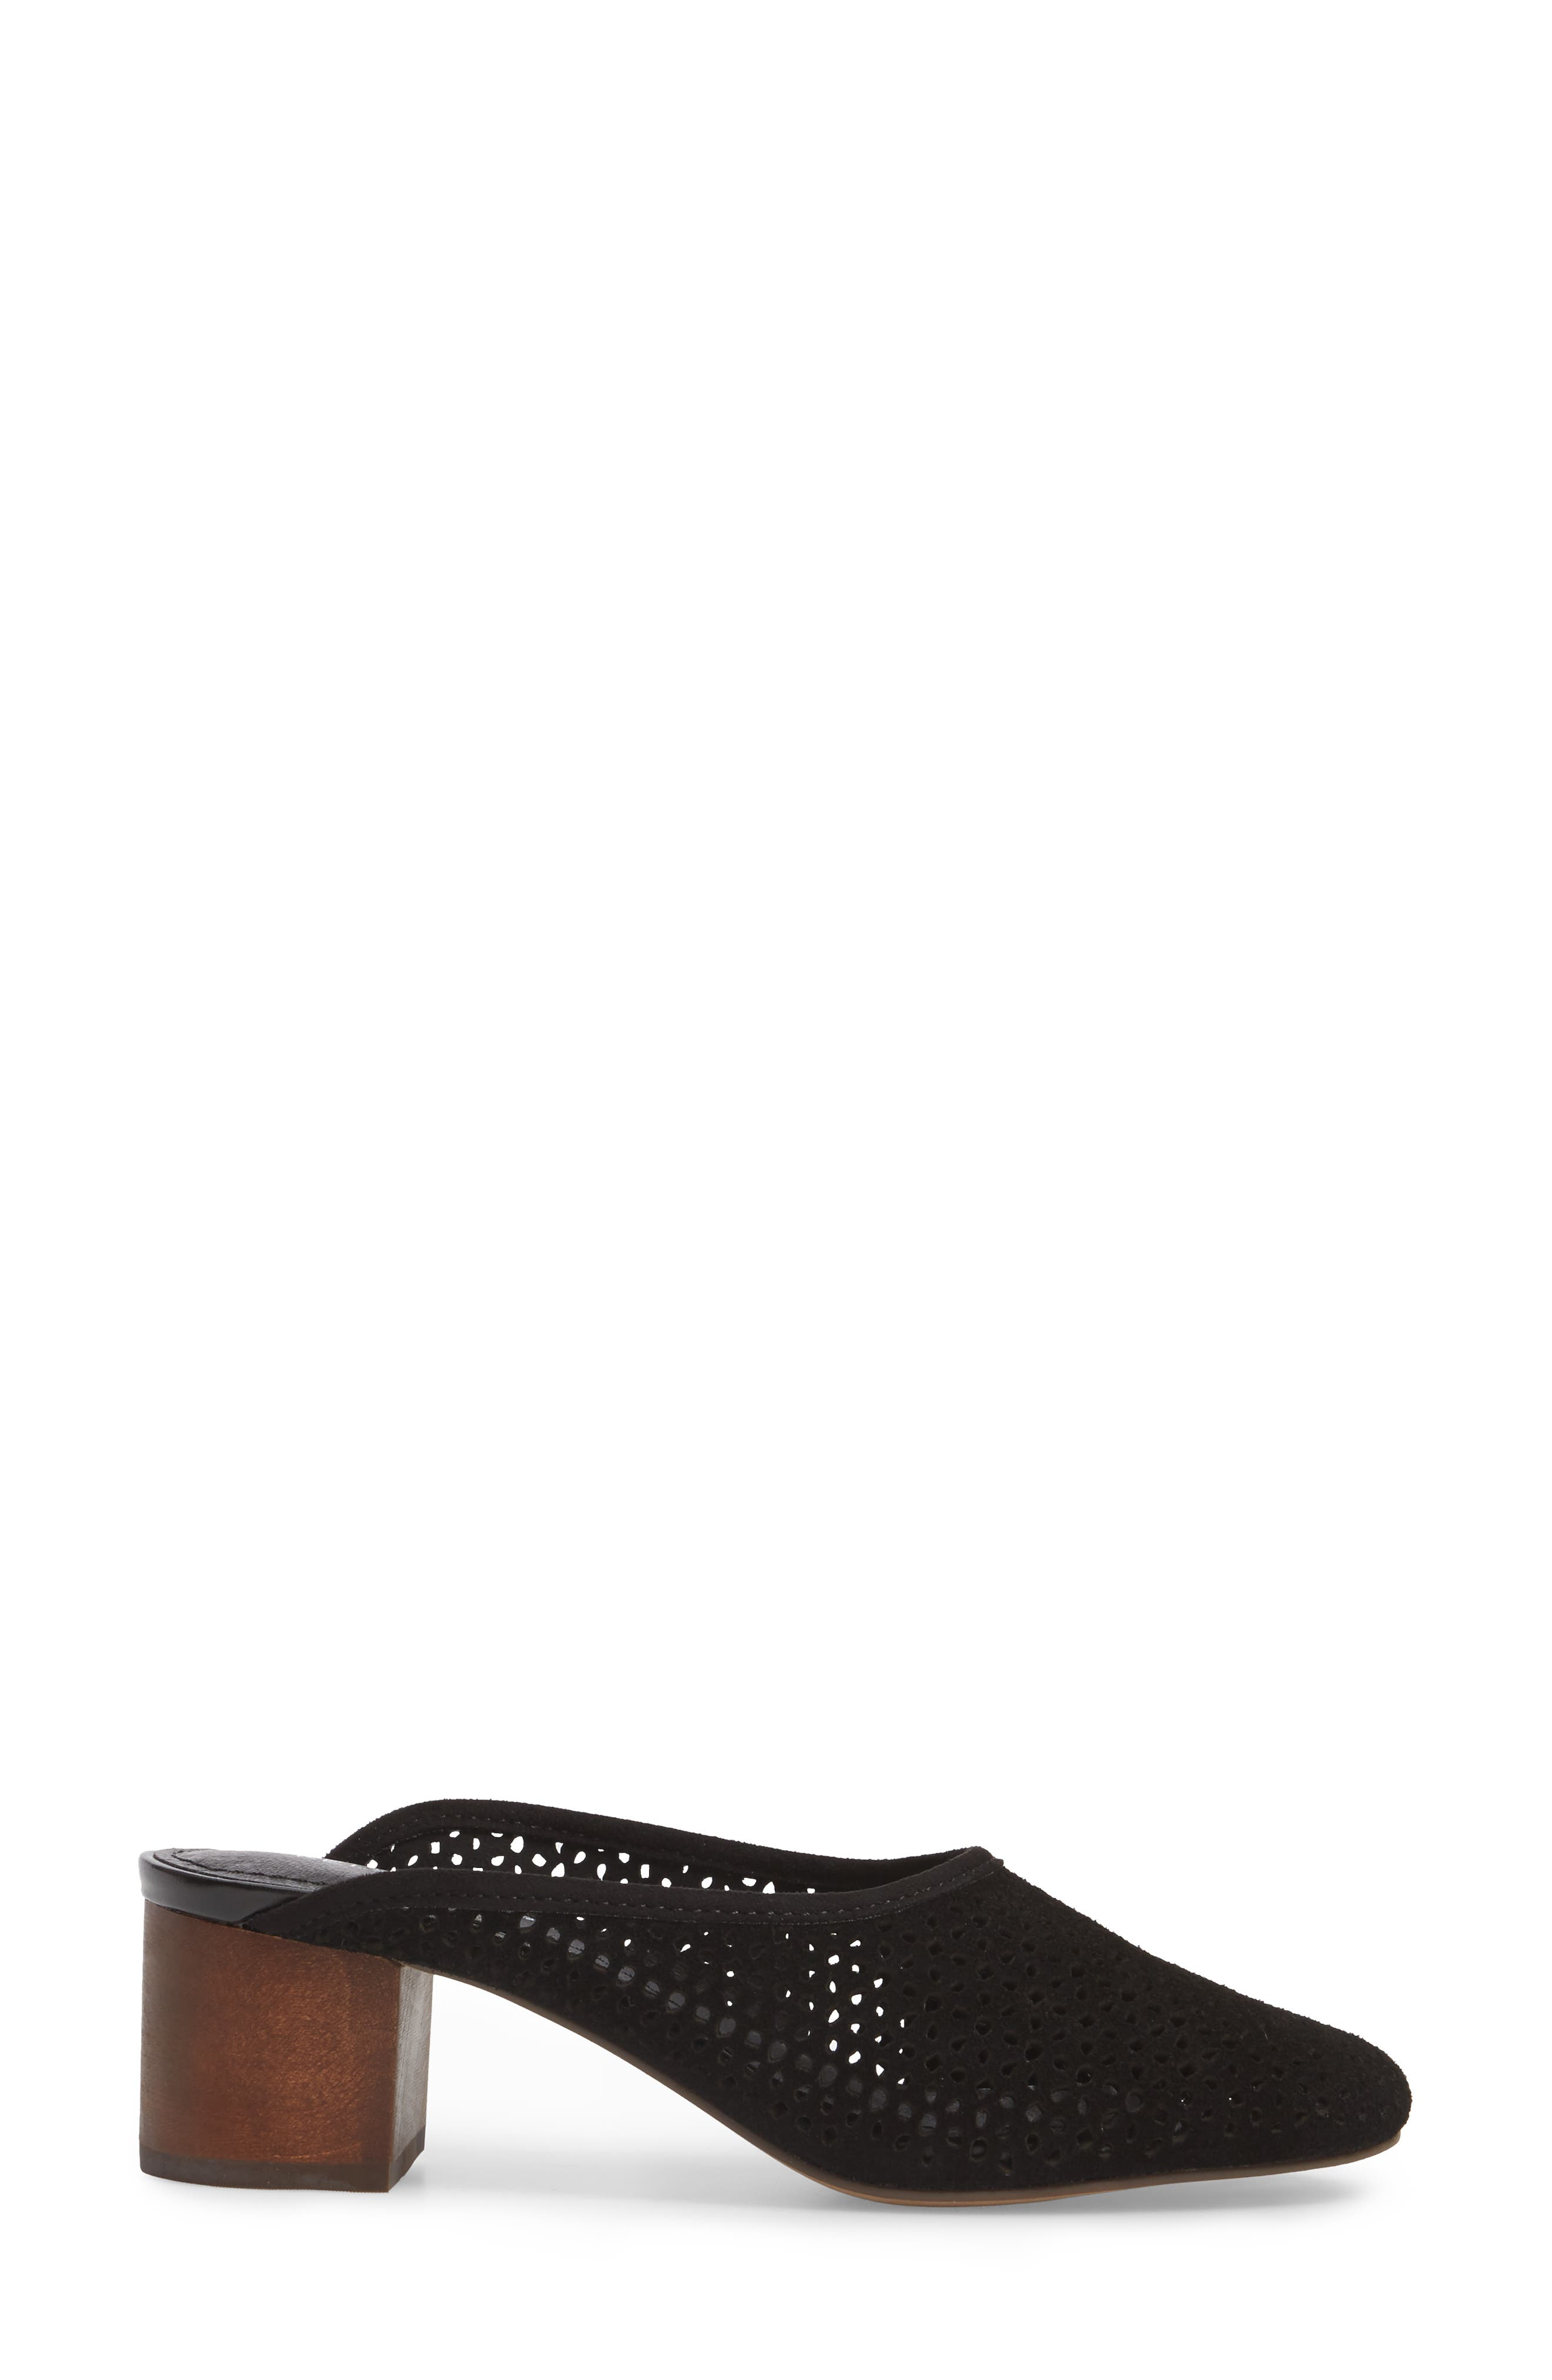 Lincoln Perforated Mule,                             Alternate thumbnail 3, color,                             Black